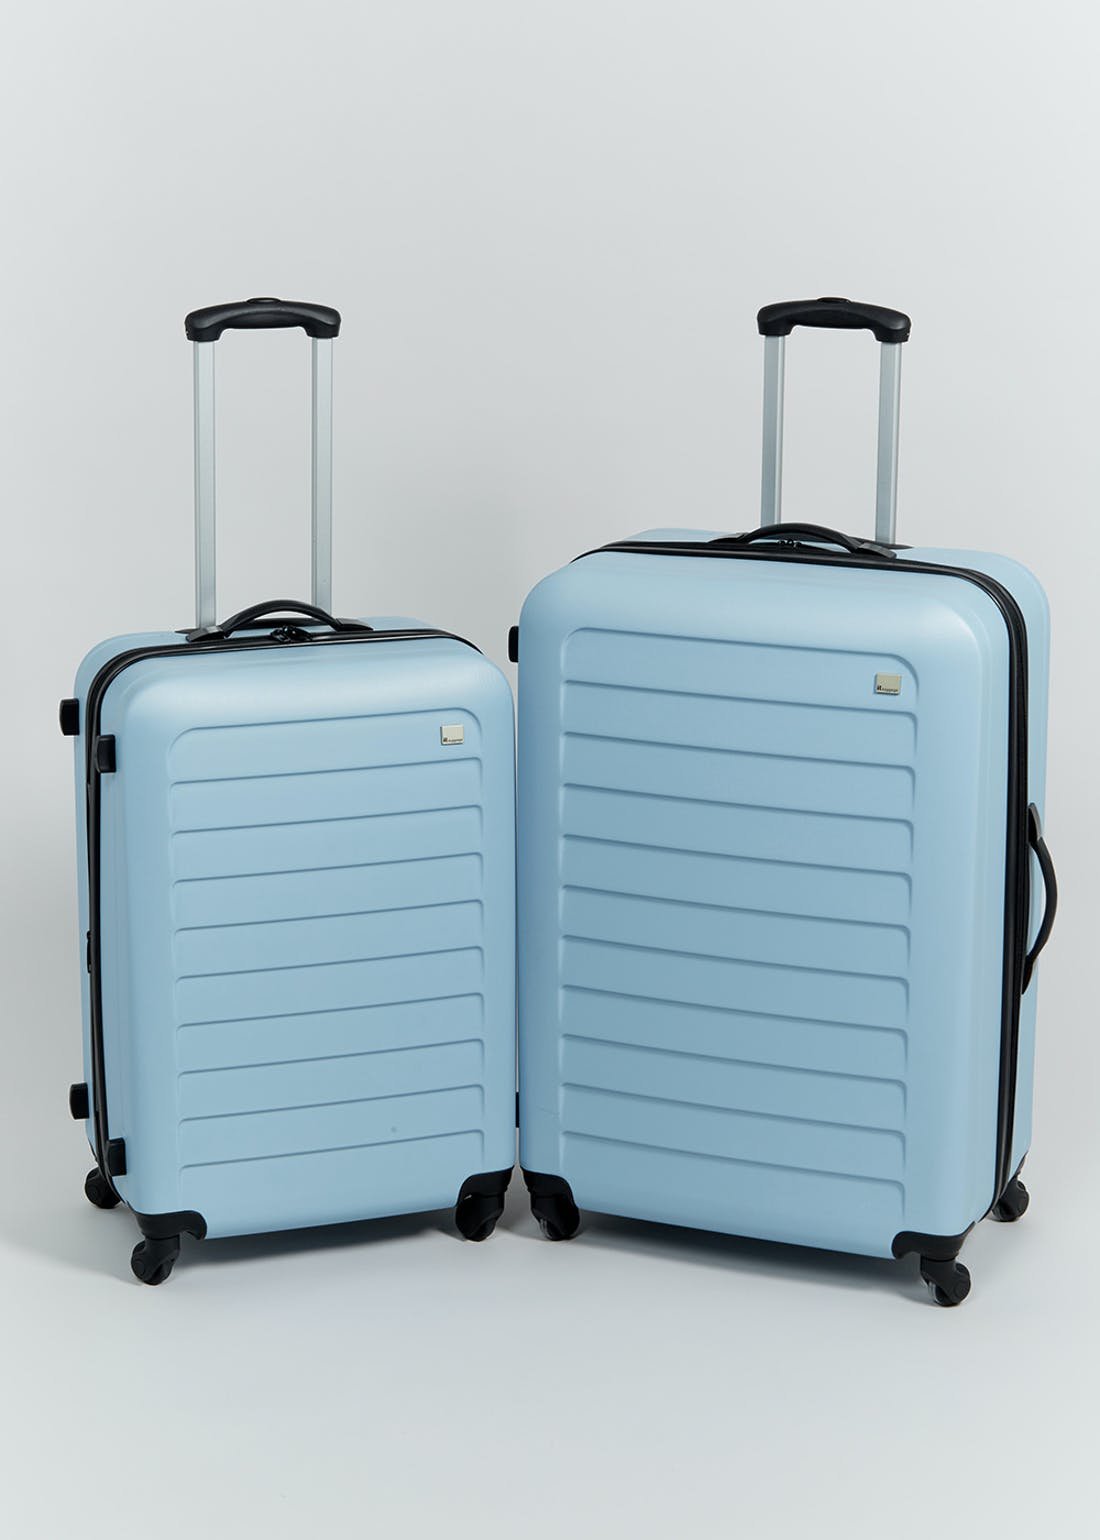 IT Luggage Venezia Suitcase